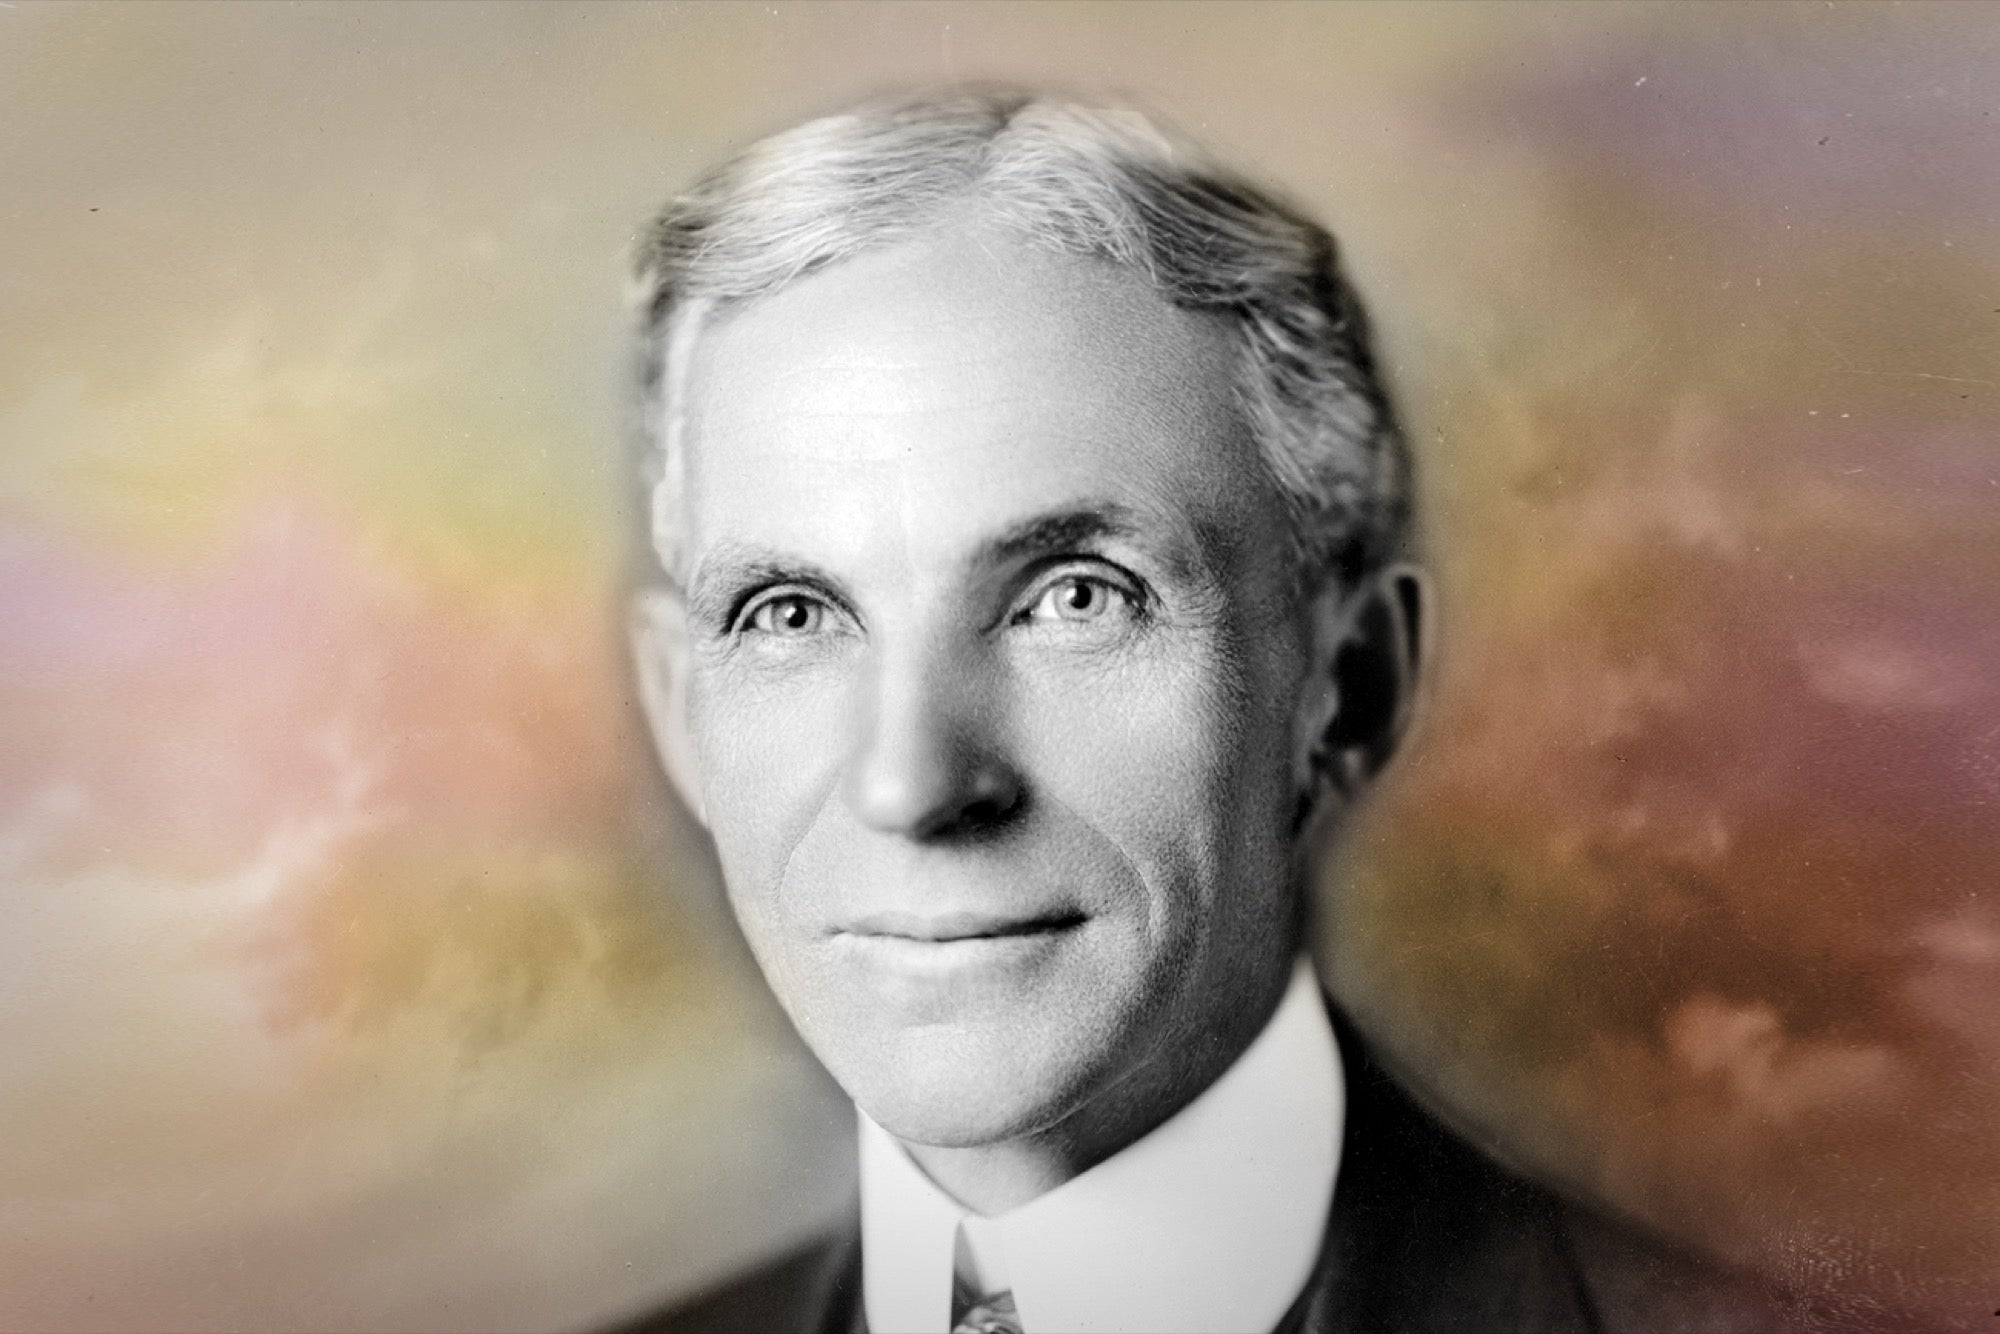 5 Things Real Leaders Do Every Day, According to Henry Ford (entrepreneur.com)